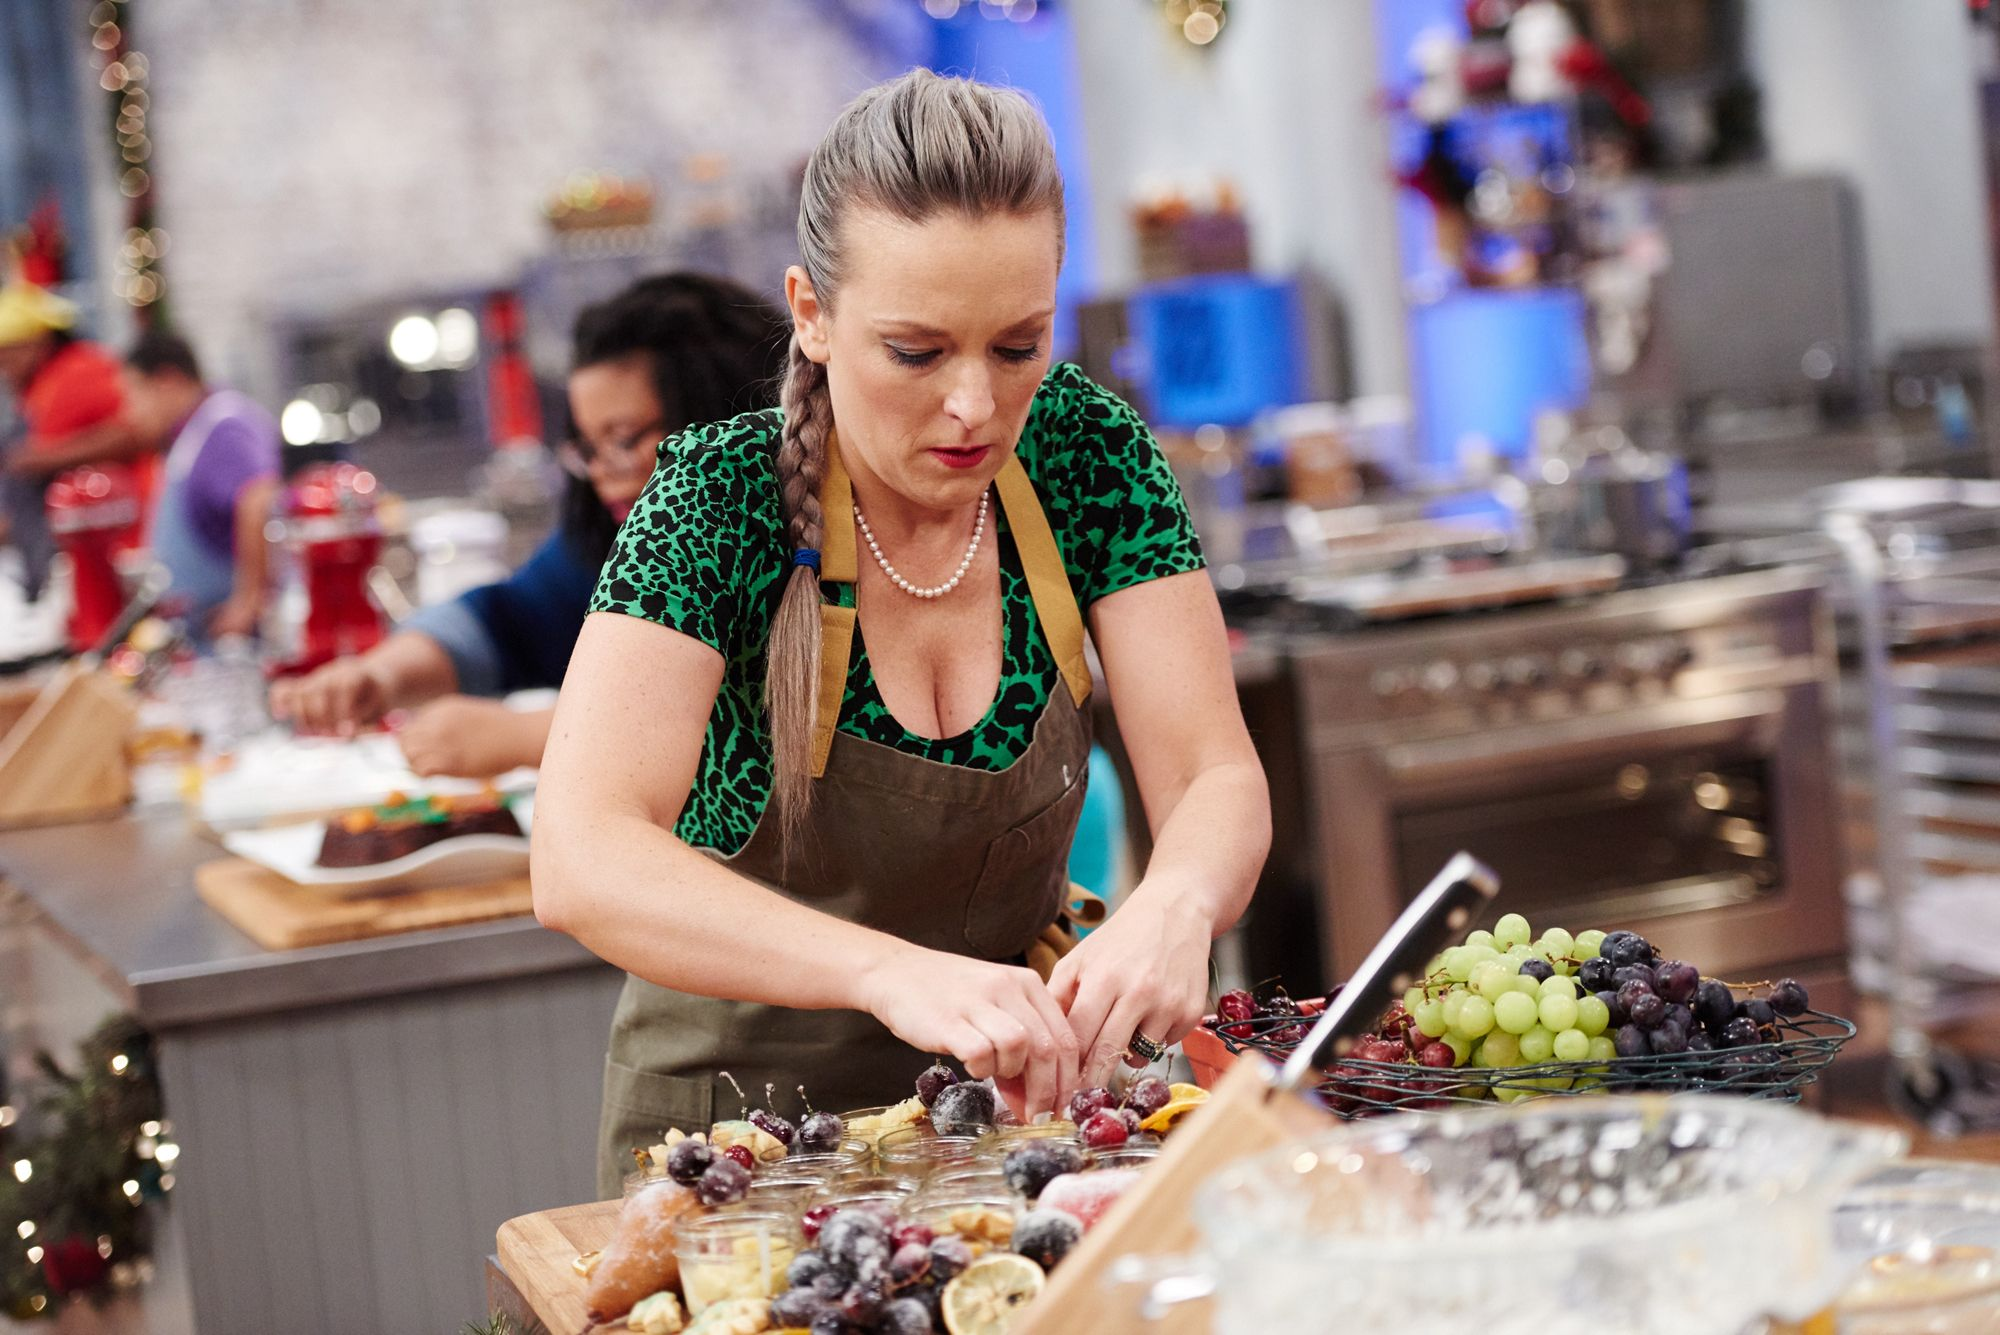 Holiday Baking Championship Contestant Maeve Rochford Gives